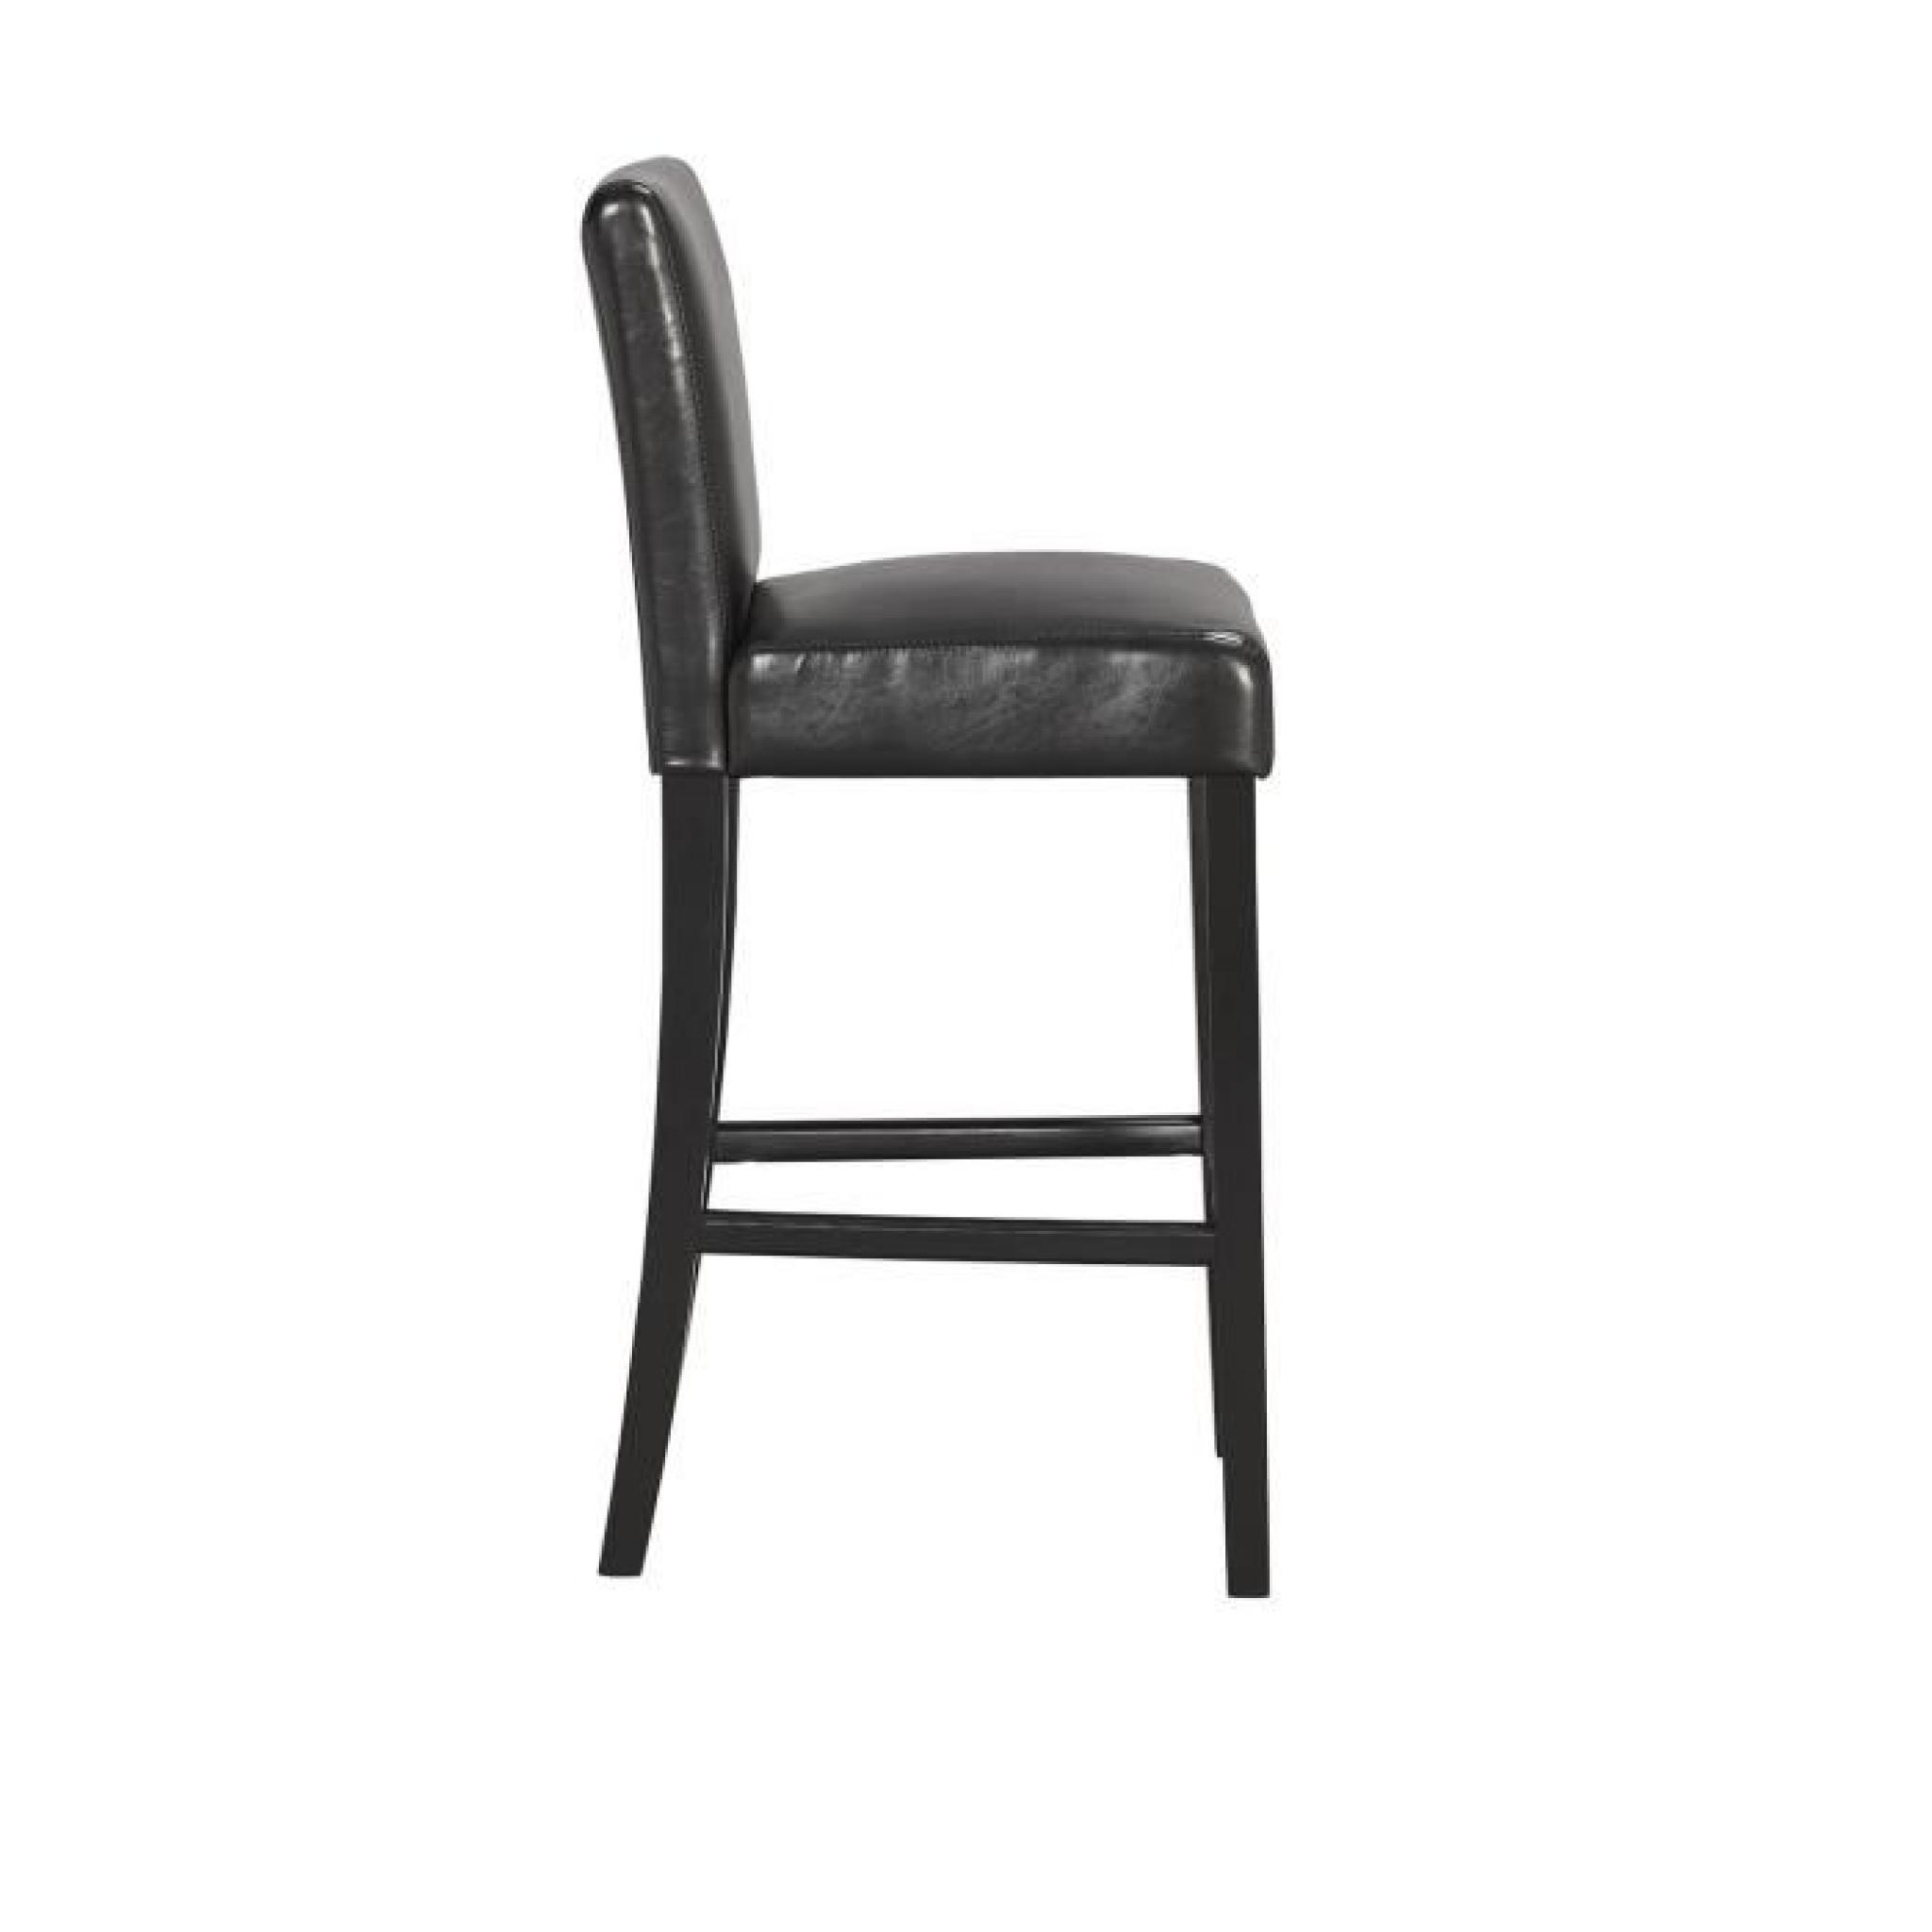 elvis lot de 2 chaises de bar noires achat vente tabouret de bar pas cher couleur et. Black Bedroom Furniture Sets. Home Design Ideas